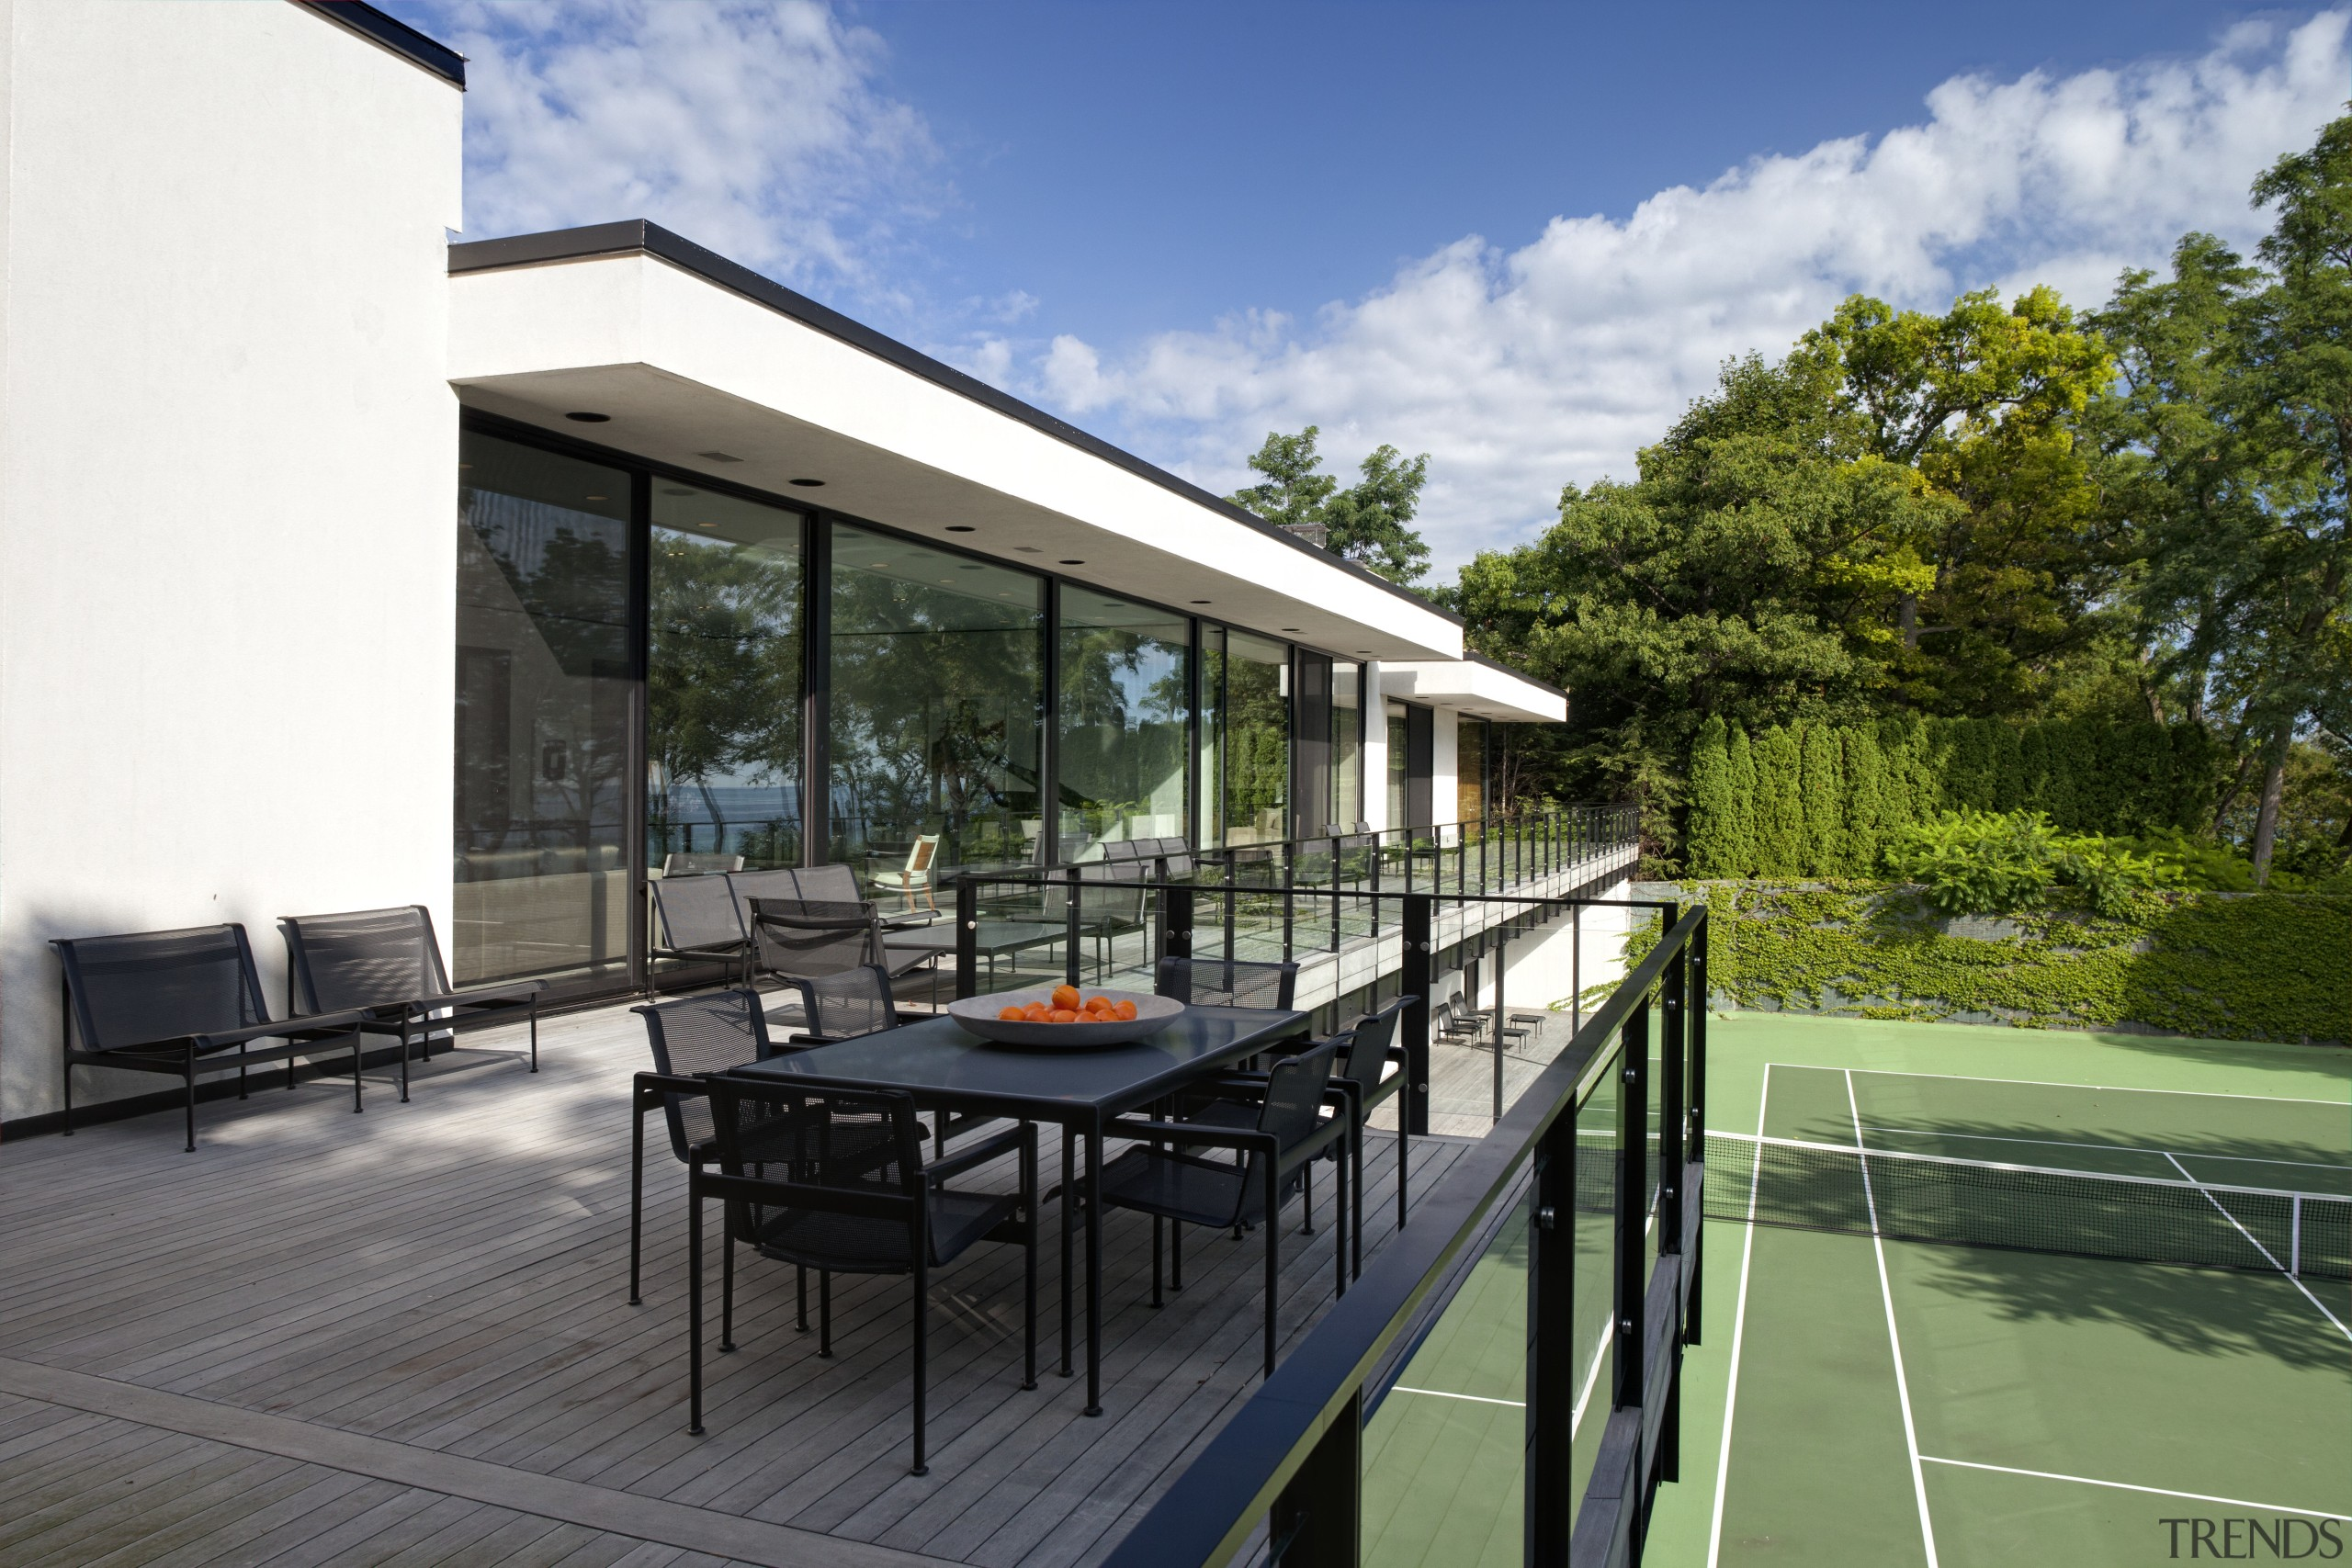 View of outdoor eating area and tennis court architecture, estate, house, outdoor structure, property, real estate, roof